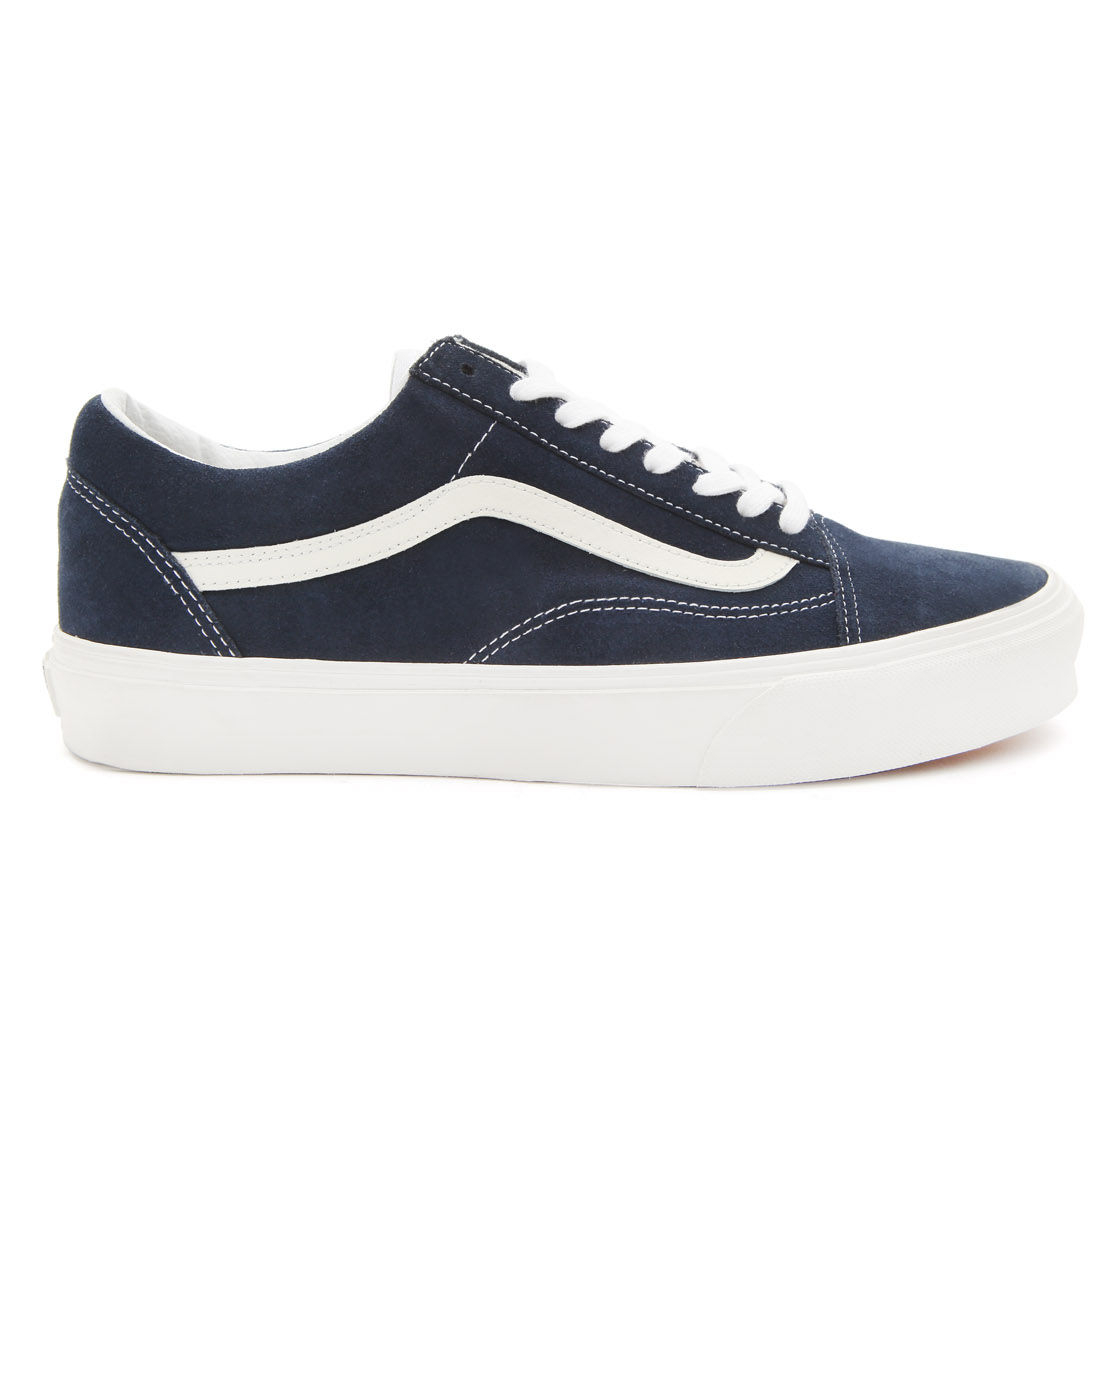 vans old skool navy suede in blue for men navy lyst. Black Bedroom Furniture Sets. Home Design Ideas